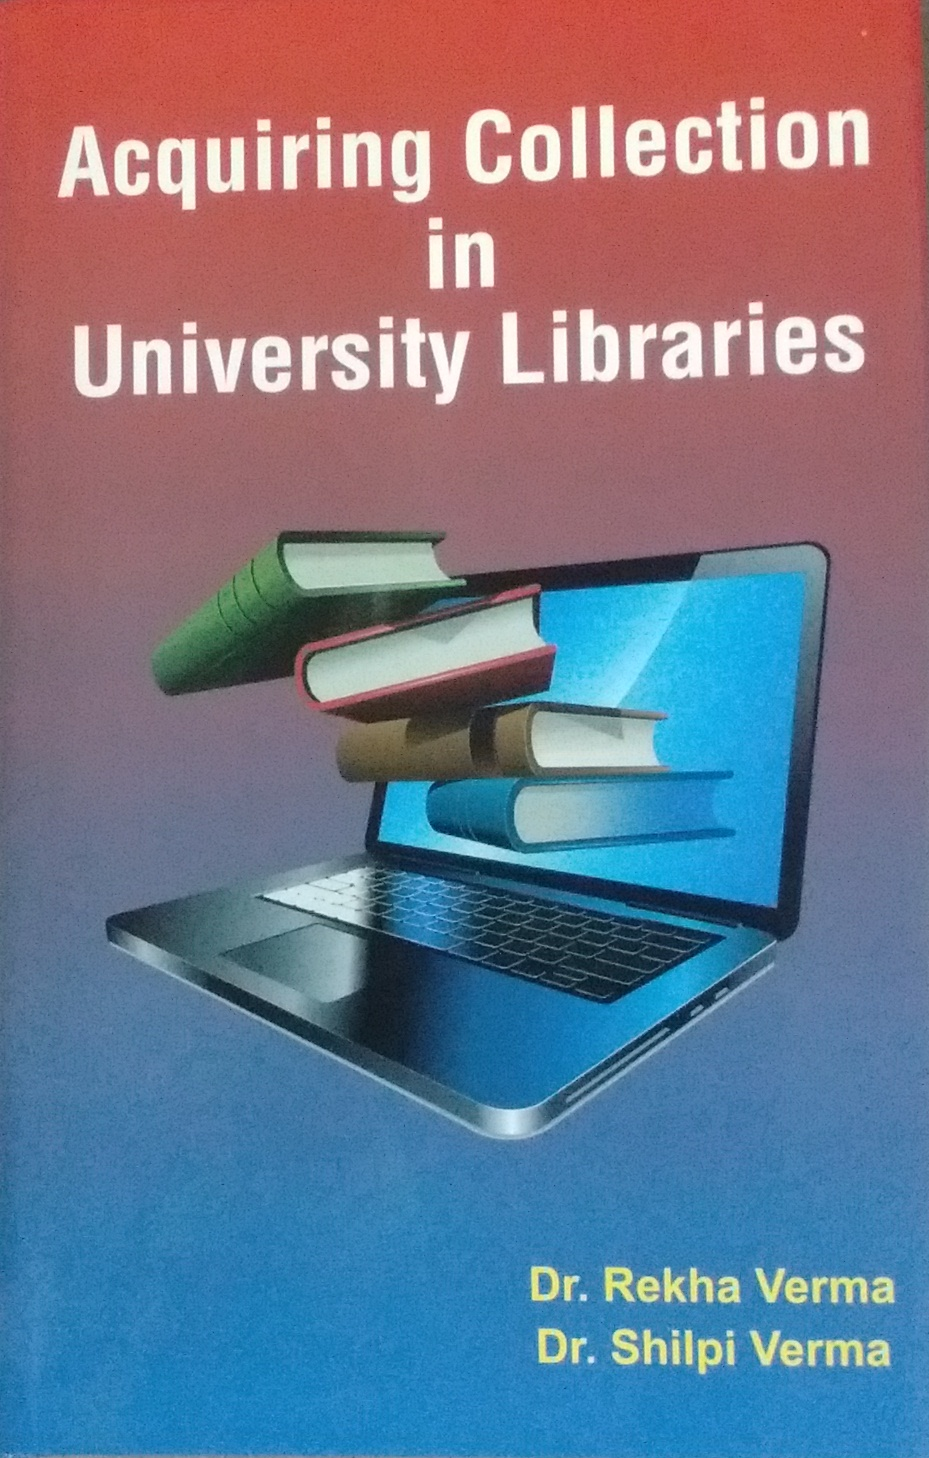 Acquiring Collection in University Libraries